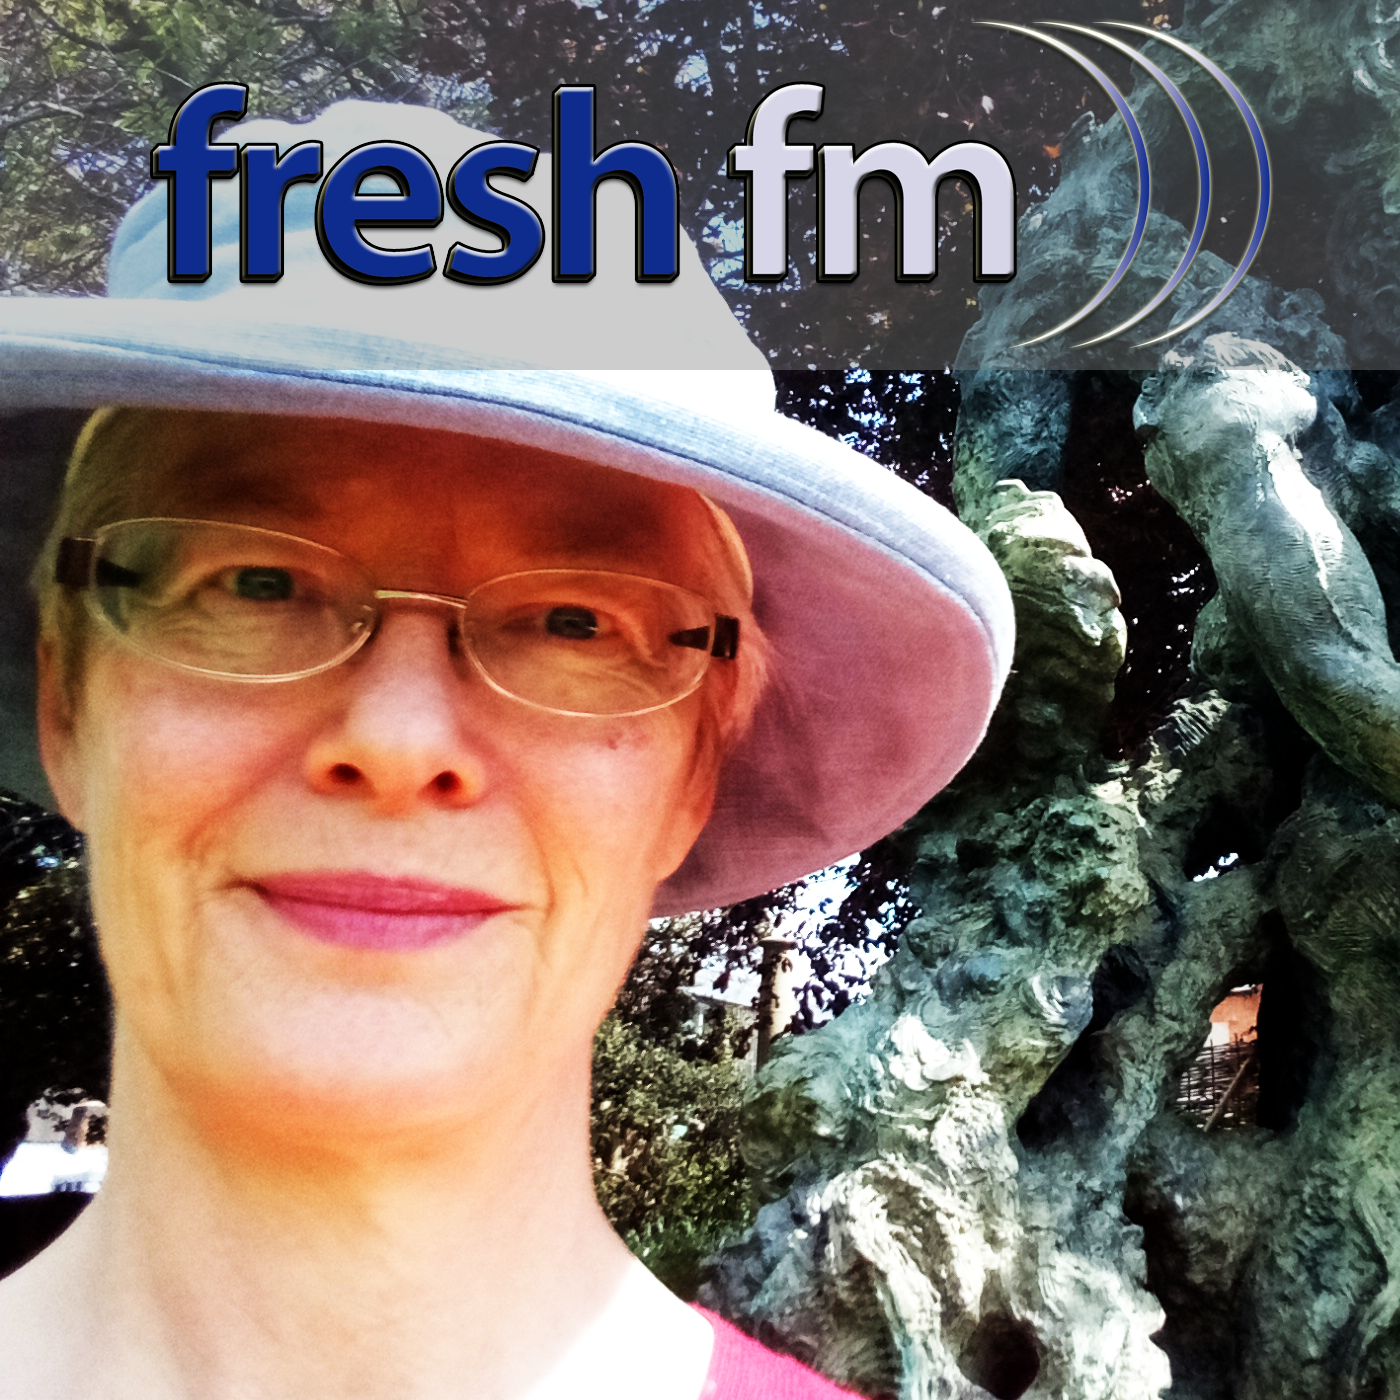 https://cdn.accessradio.org/StationFolder/freshfm/Images/Life at the Emsley - Liz Salt1.png